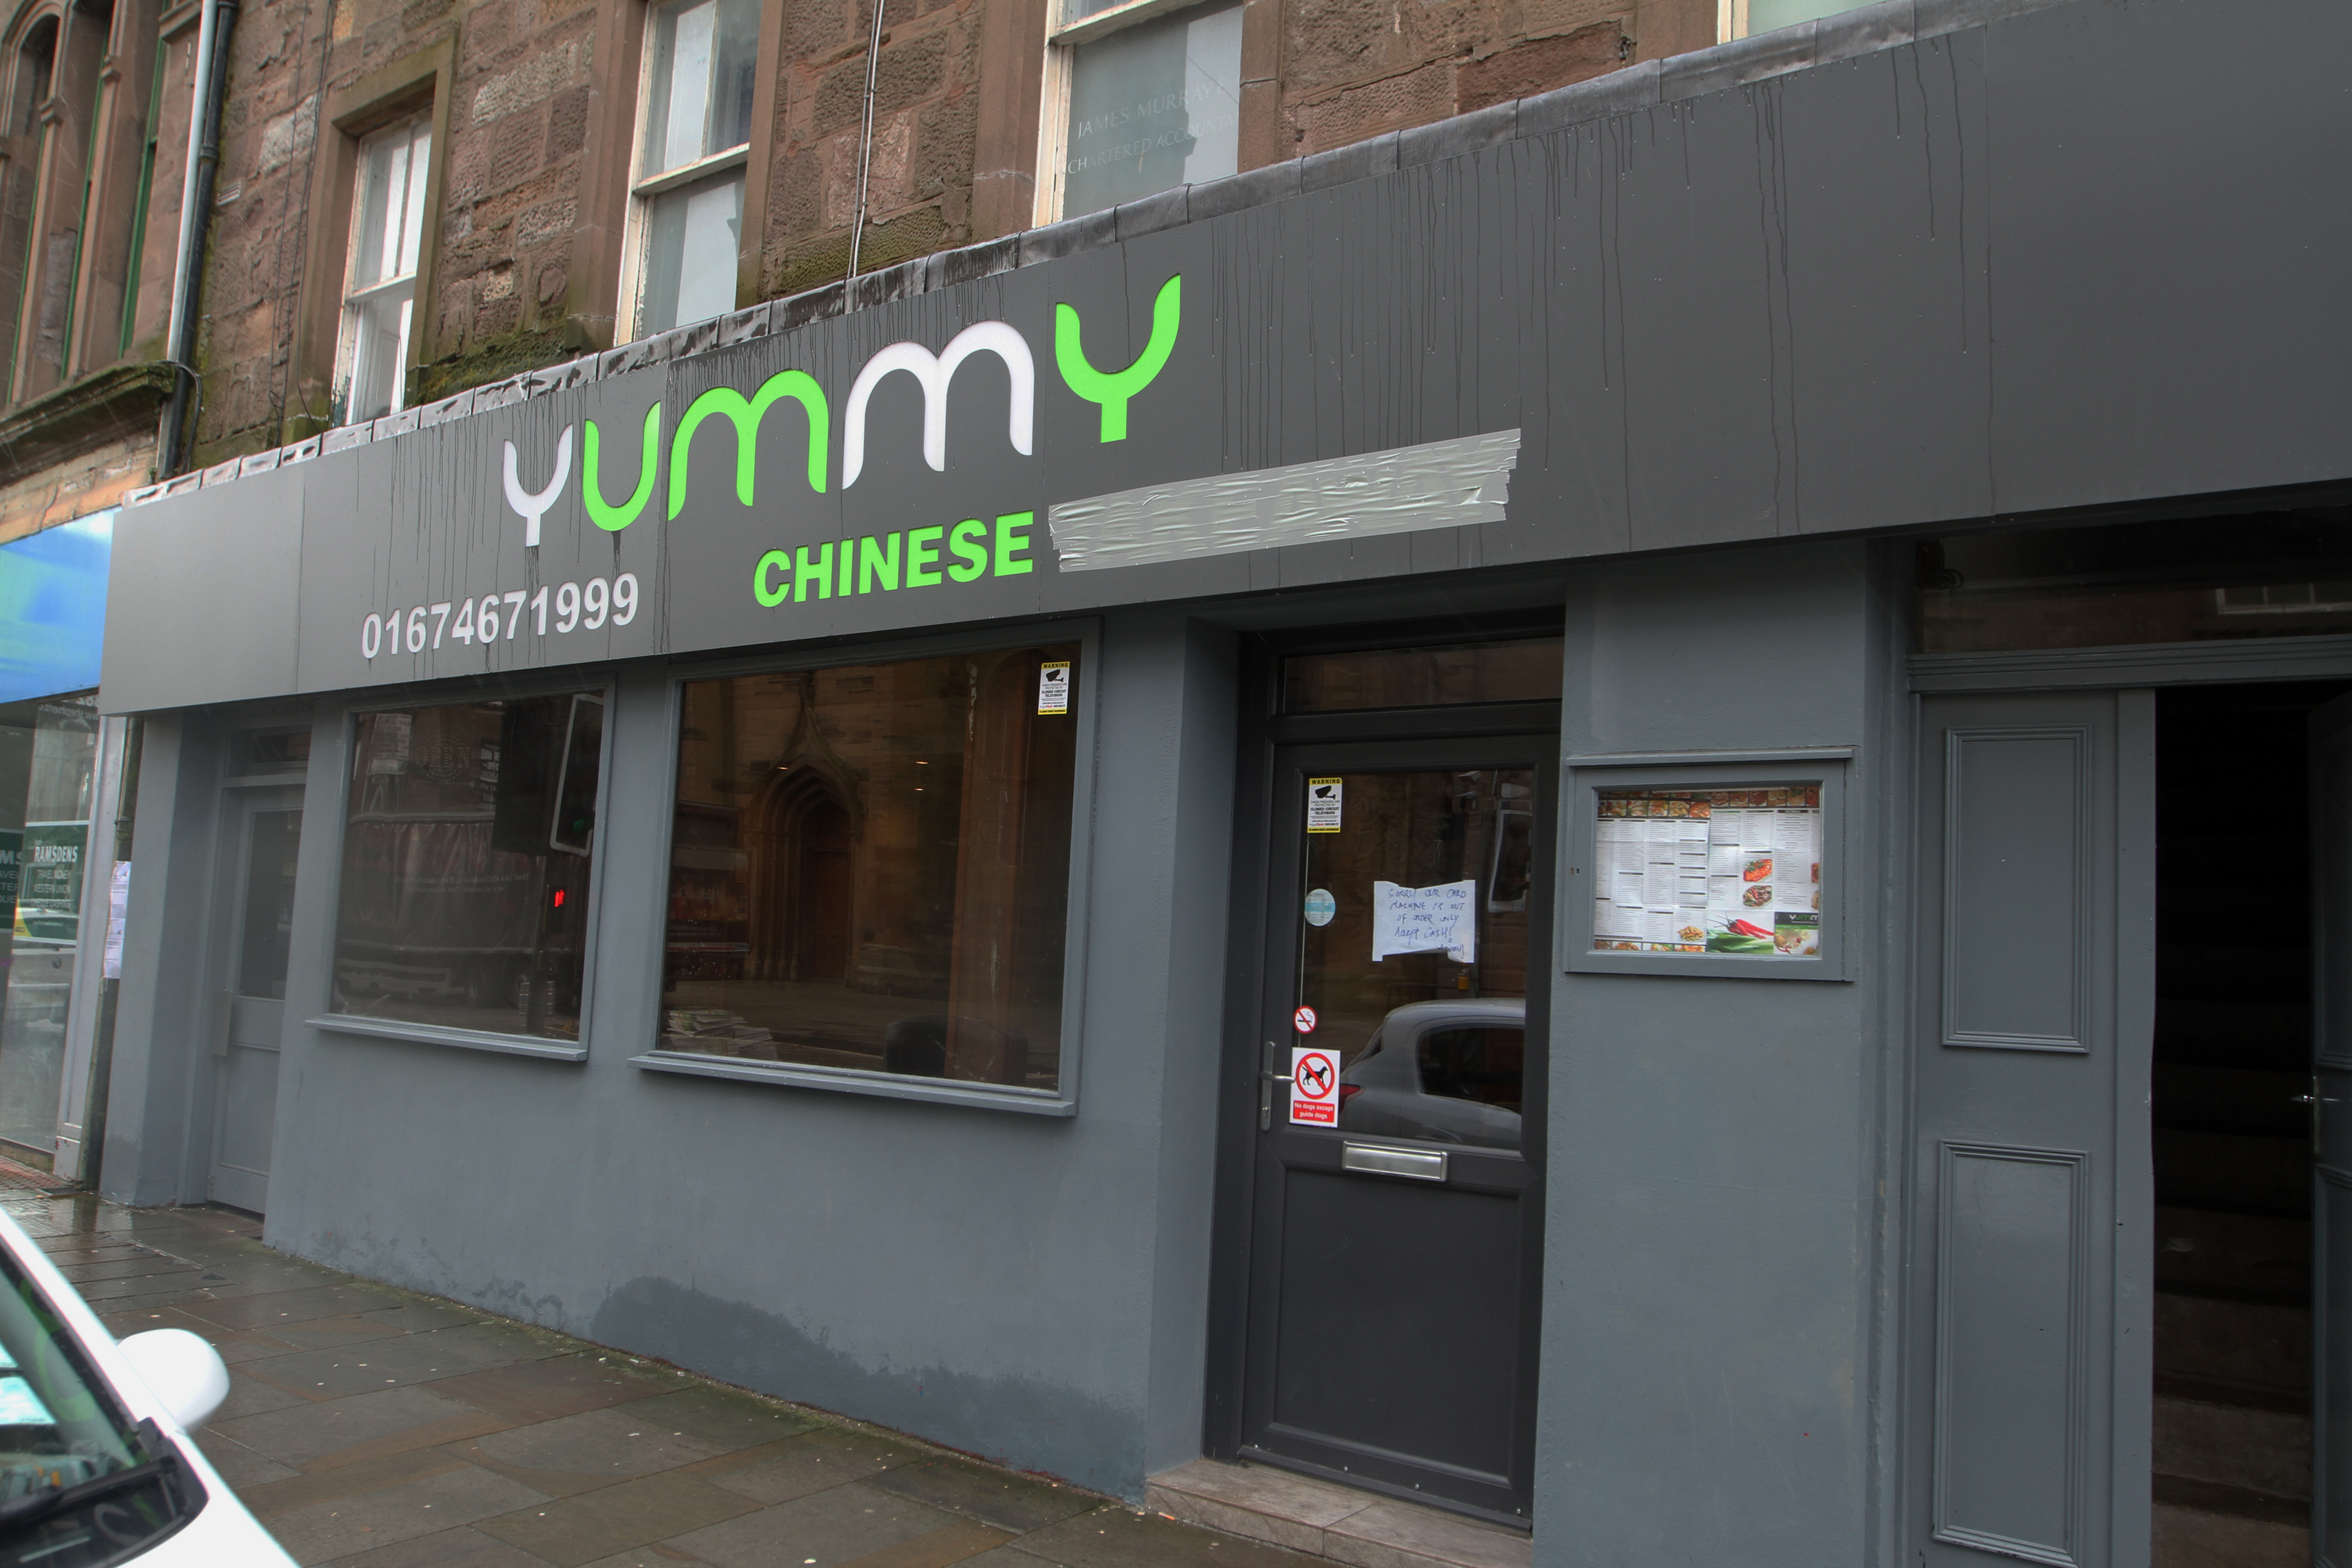 The new-look shop front.